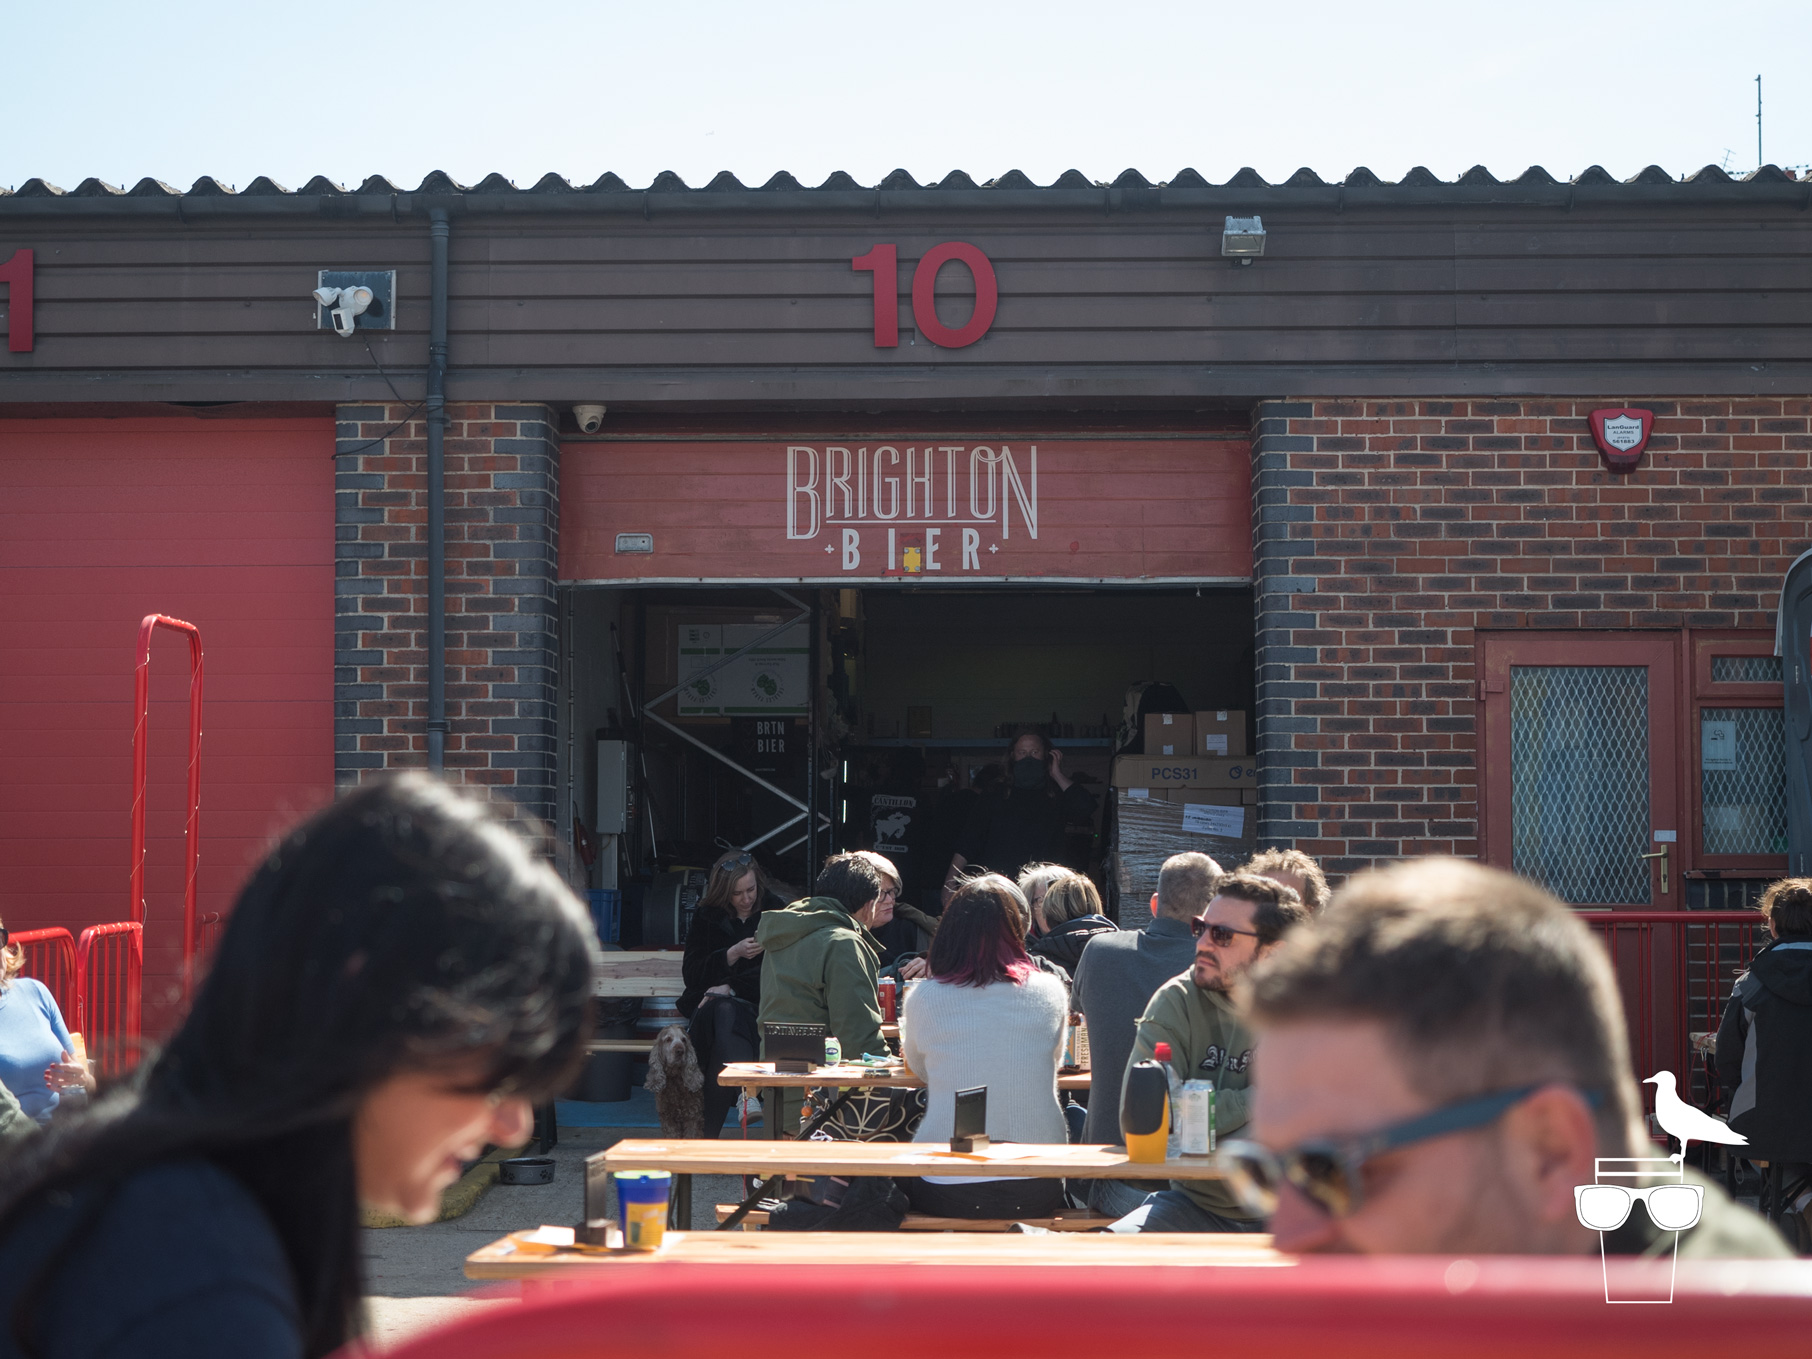 brighton-bier-brewery-taproom-outside-couple-drinking-in-foreground